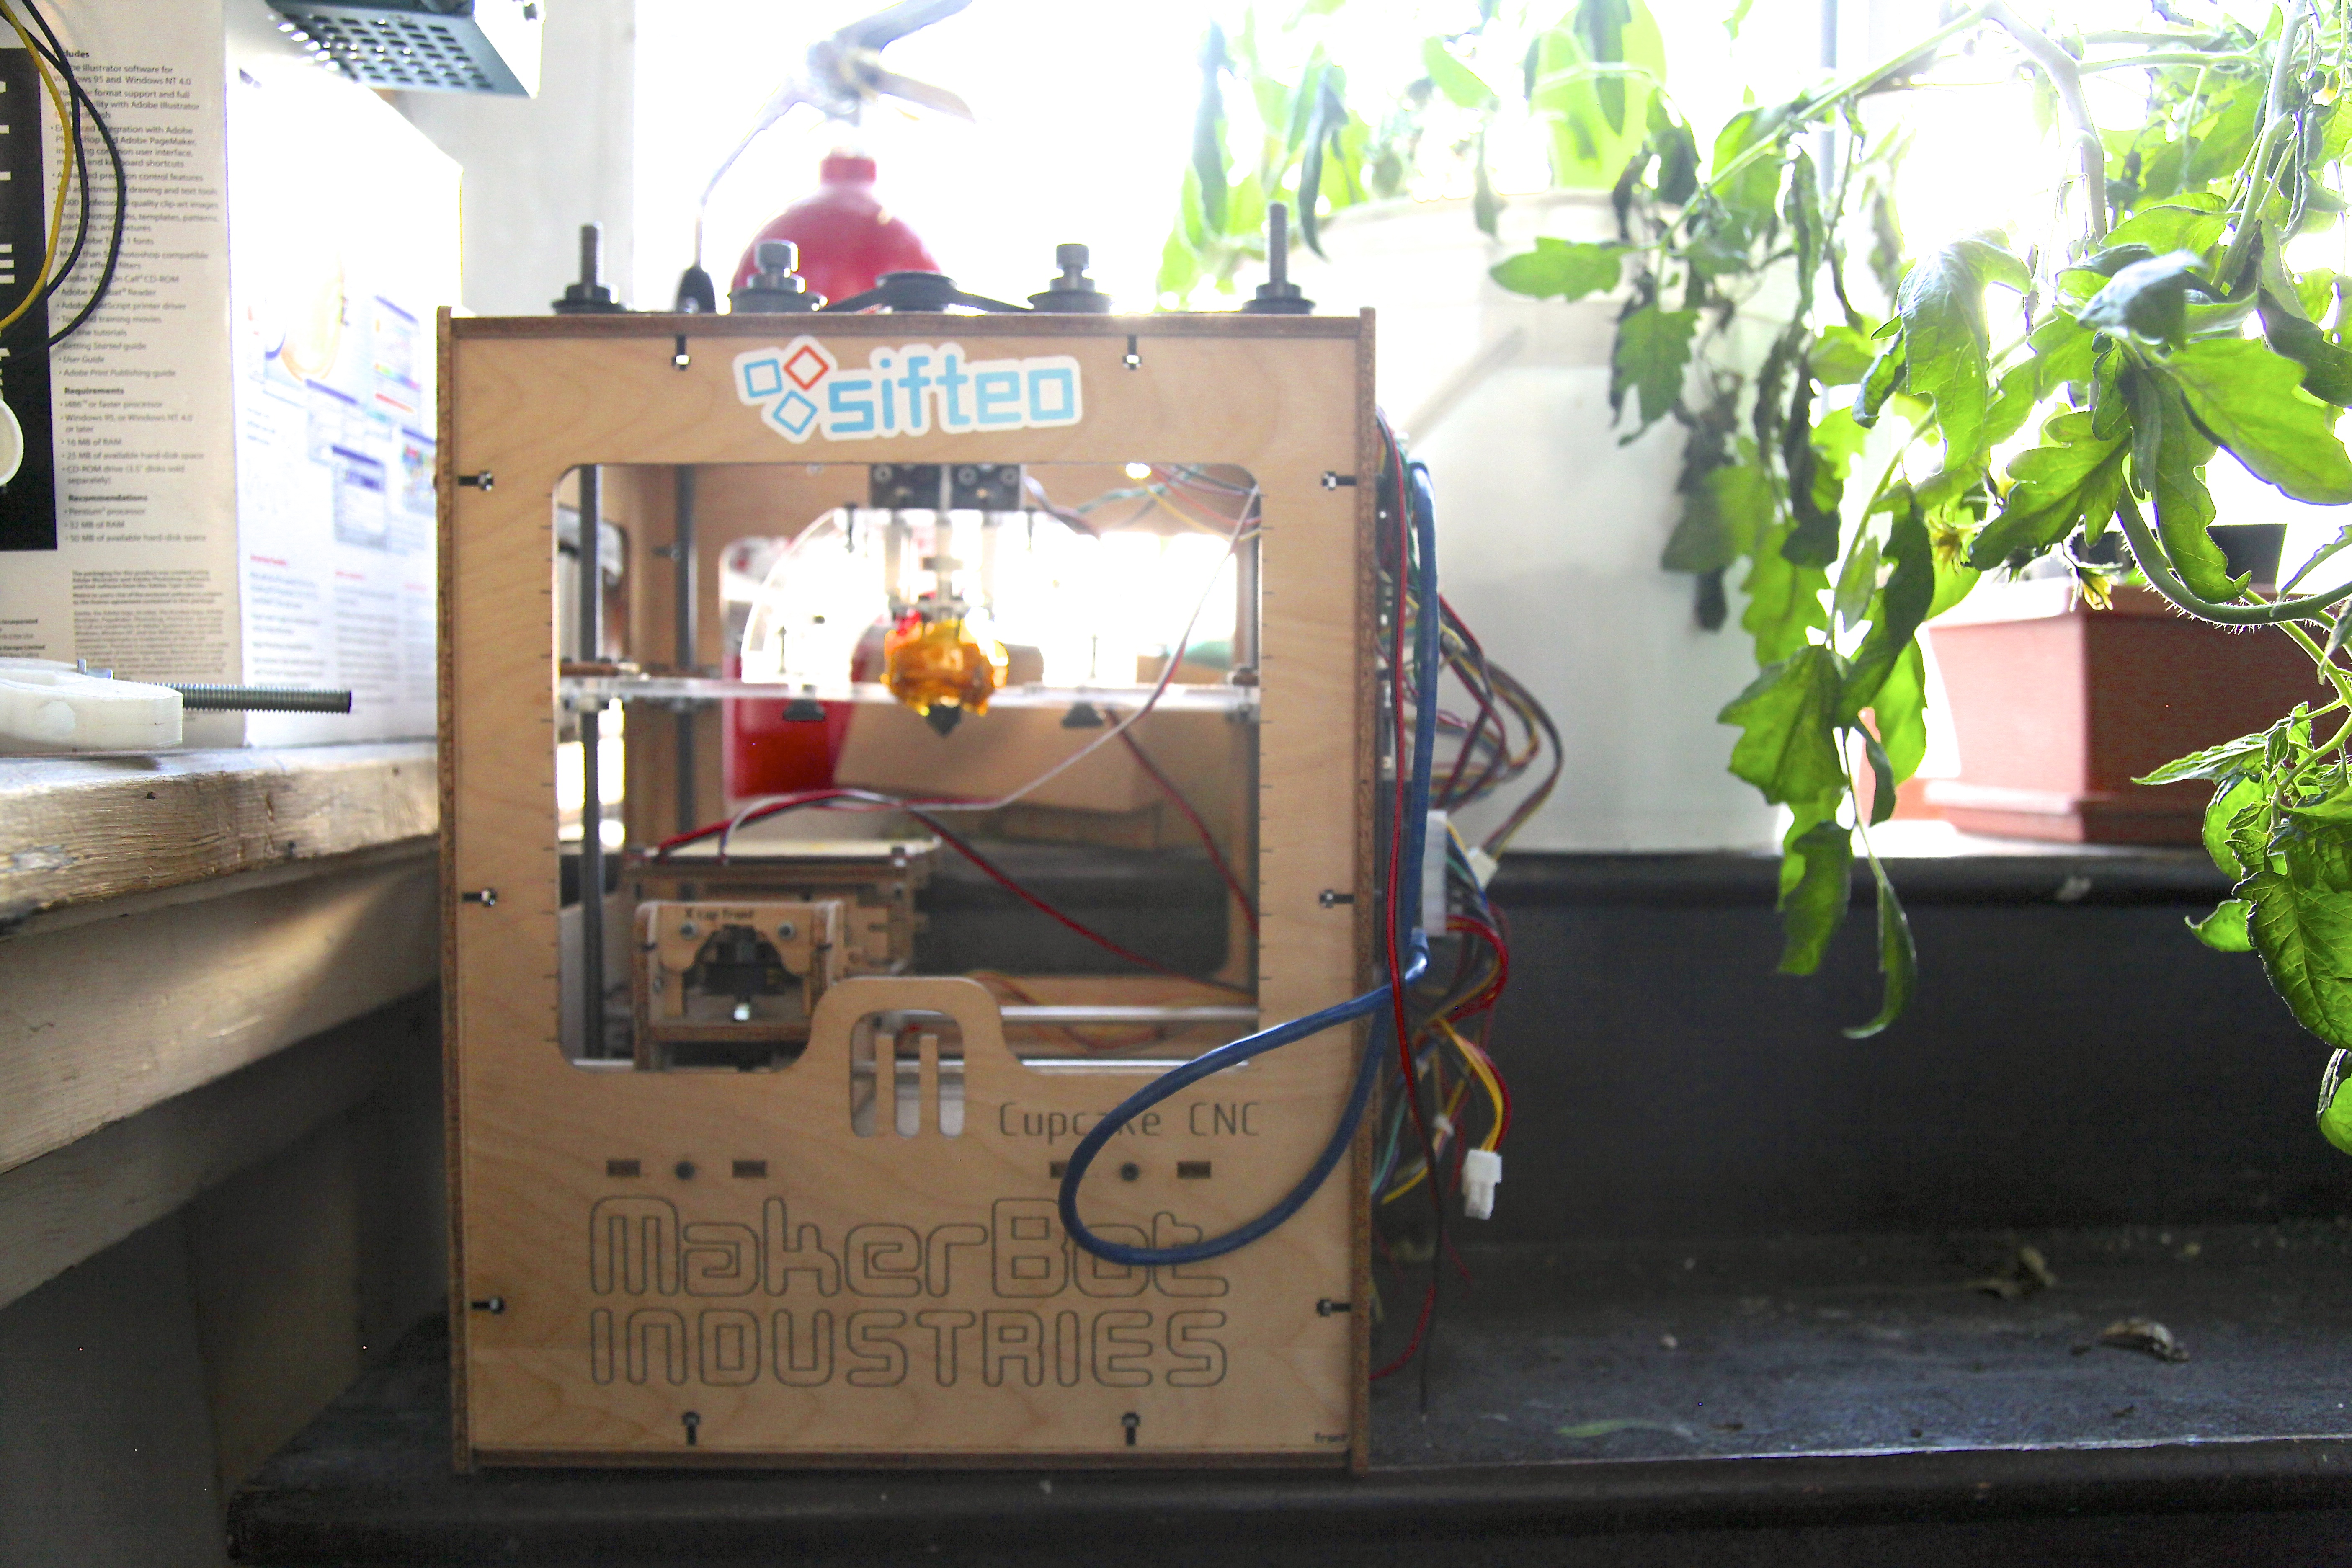 All of Noisebridge's equipment is donated, including its 3D printers. It doesn't have the latest Replicator, but it does stock a vintage MakerBot Cupcake. Photo by Signe Brewster